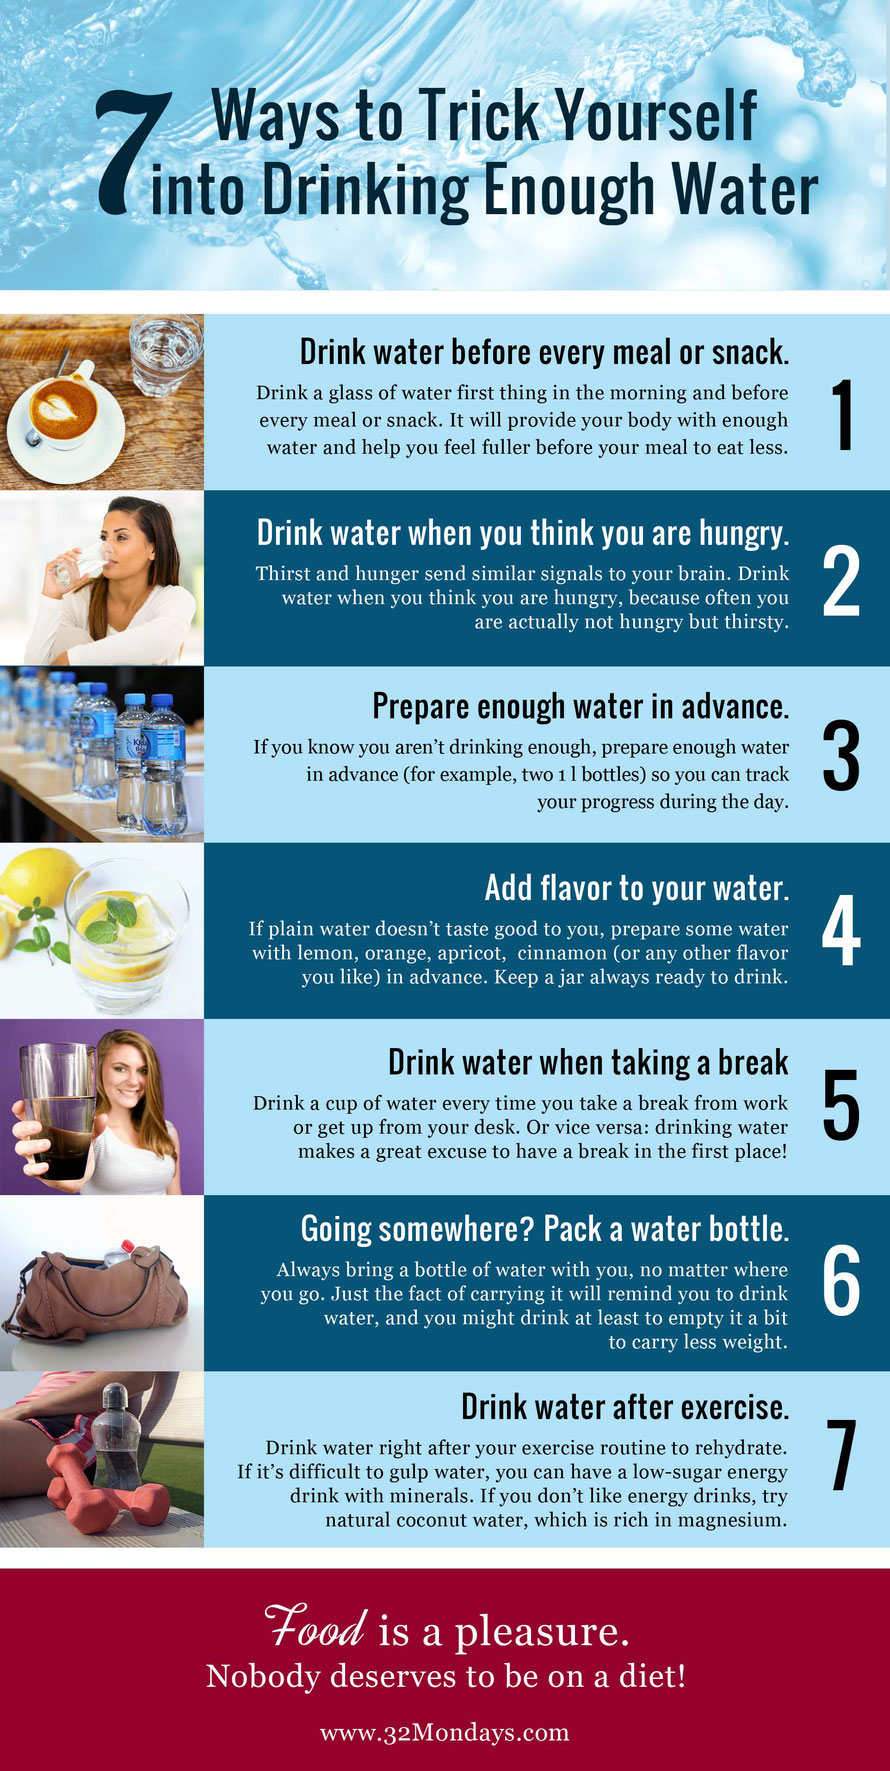 7 Ways to Trick Yourself into Drinking Enough Water